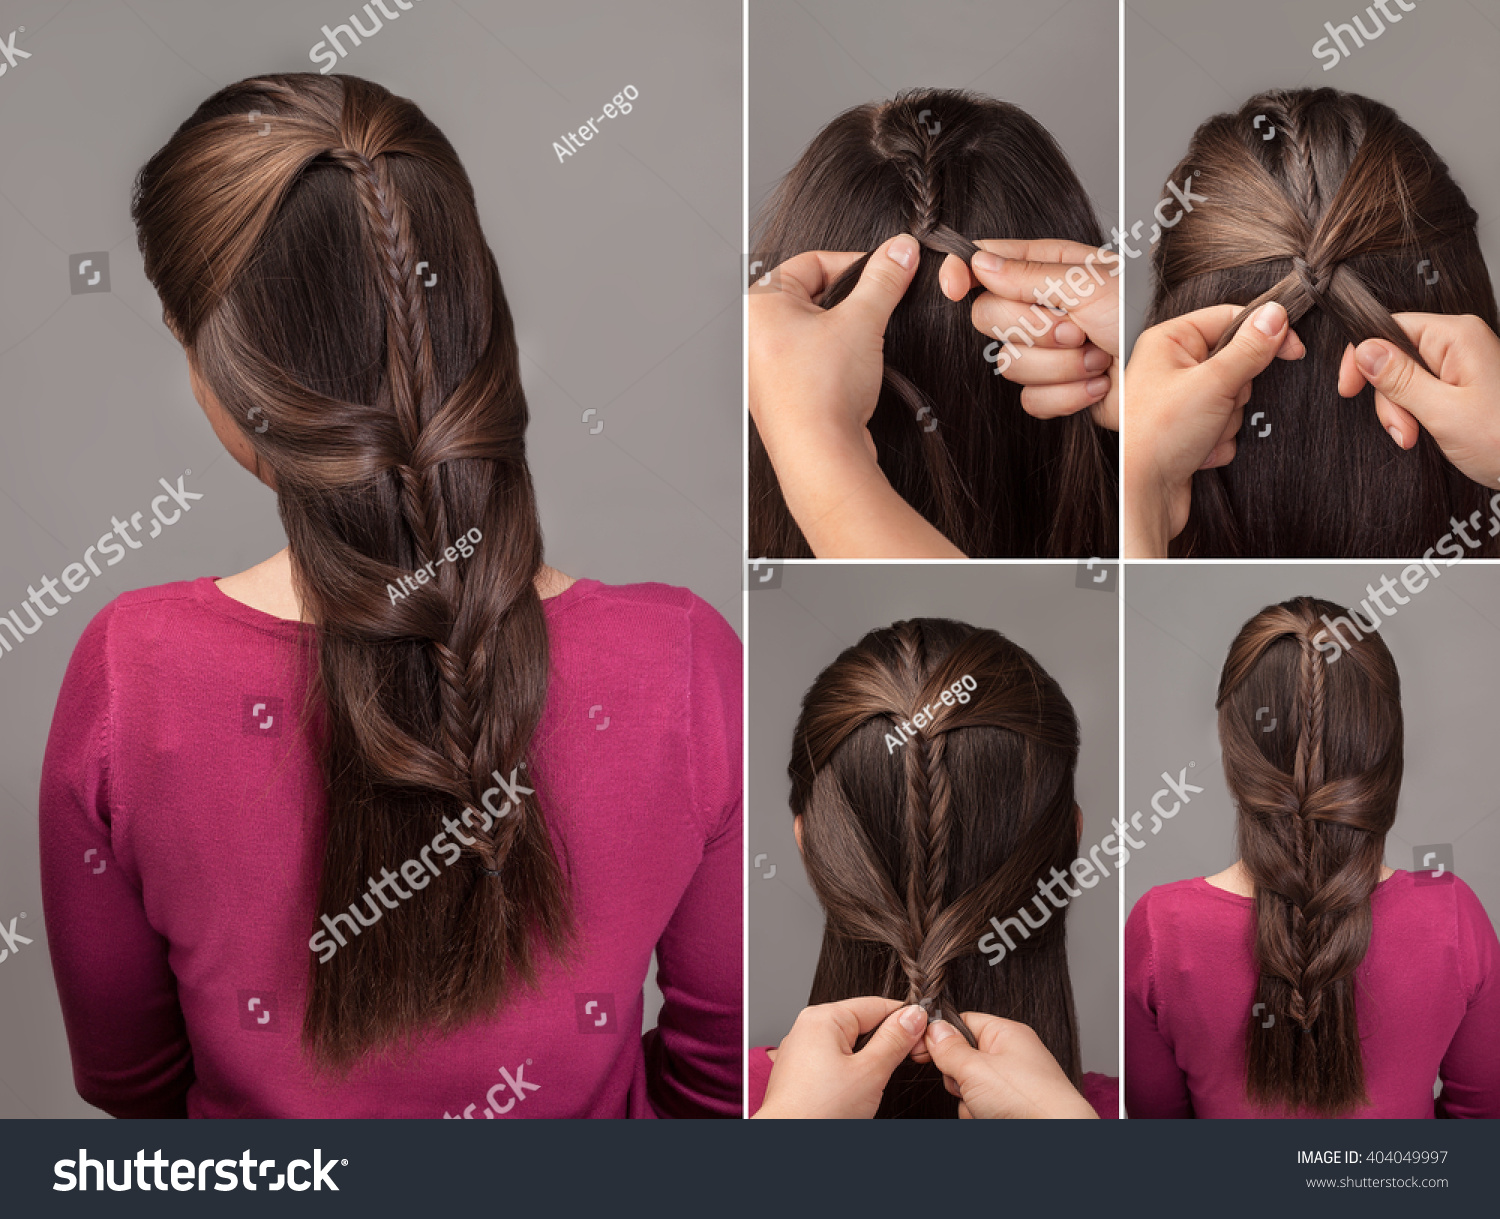 Hairstyles Braids Easy Tutorial: French Hairstyle Method